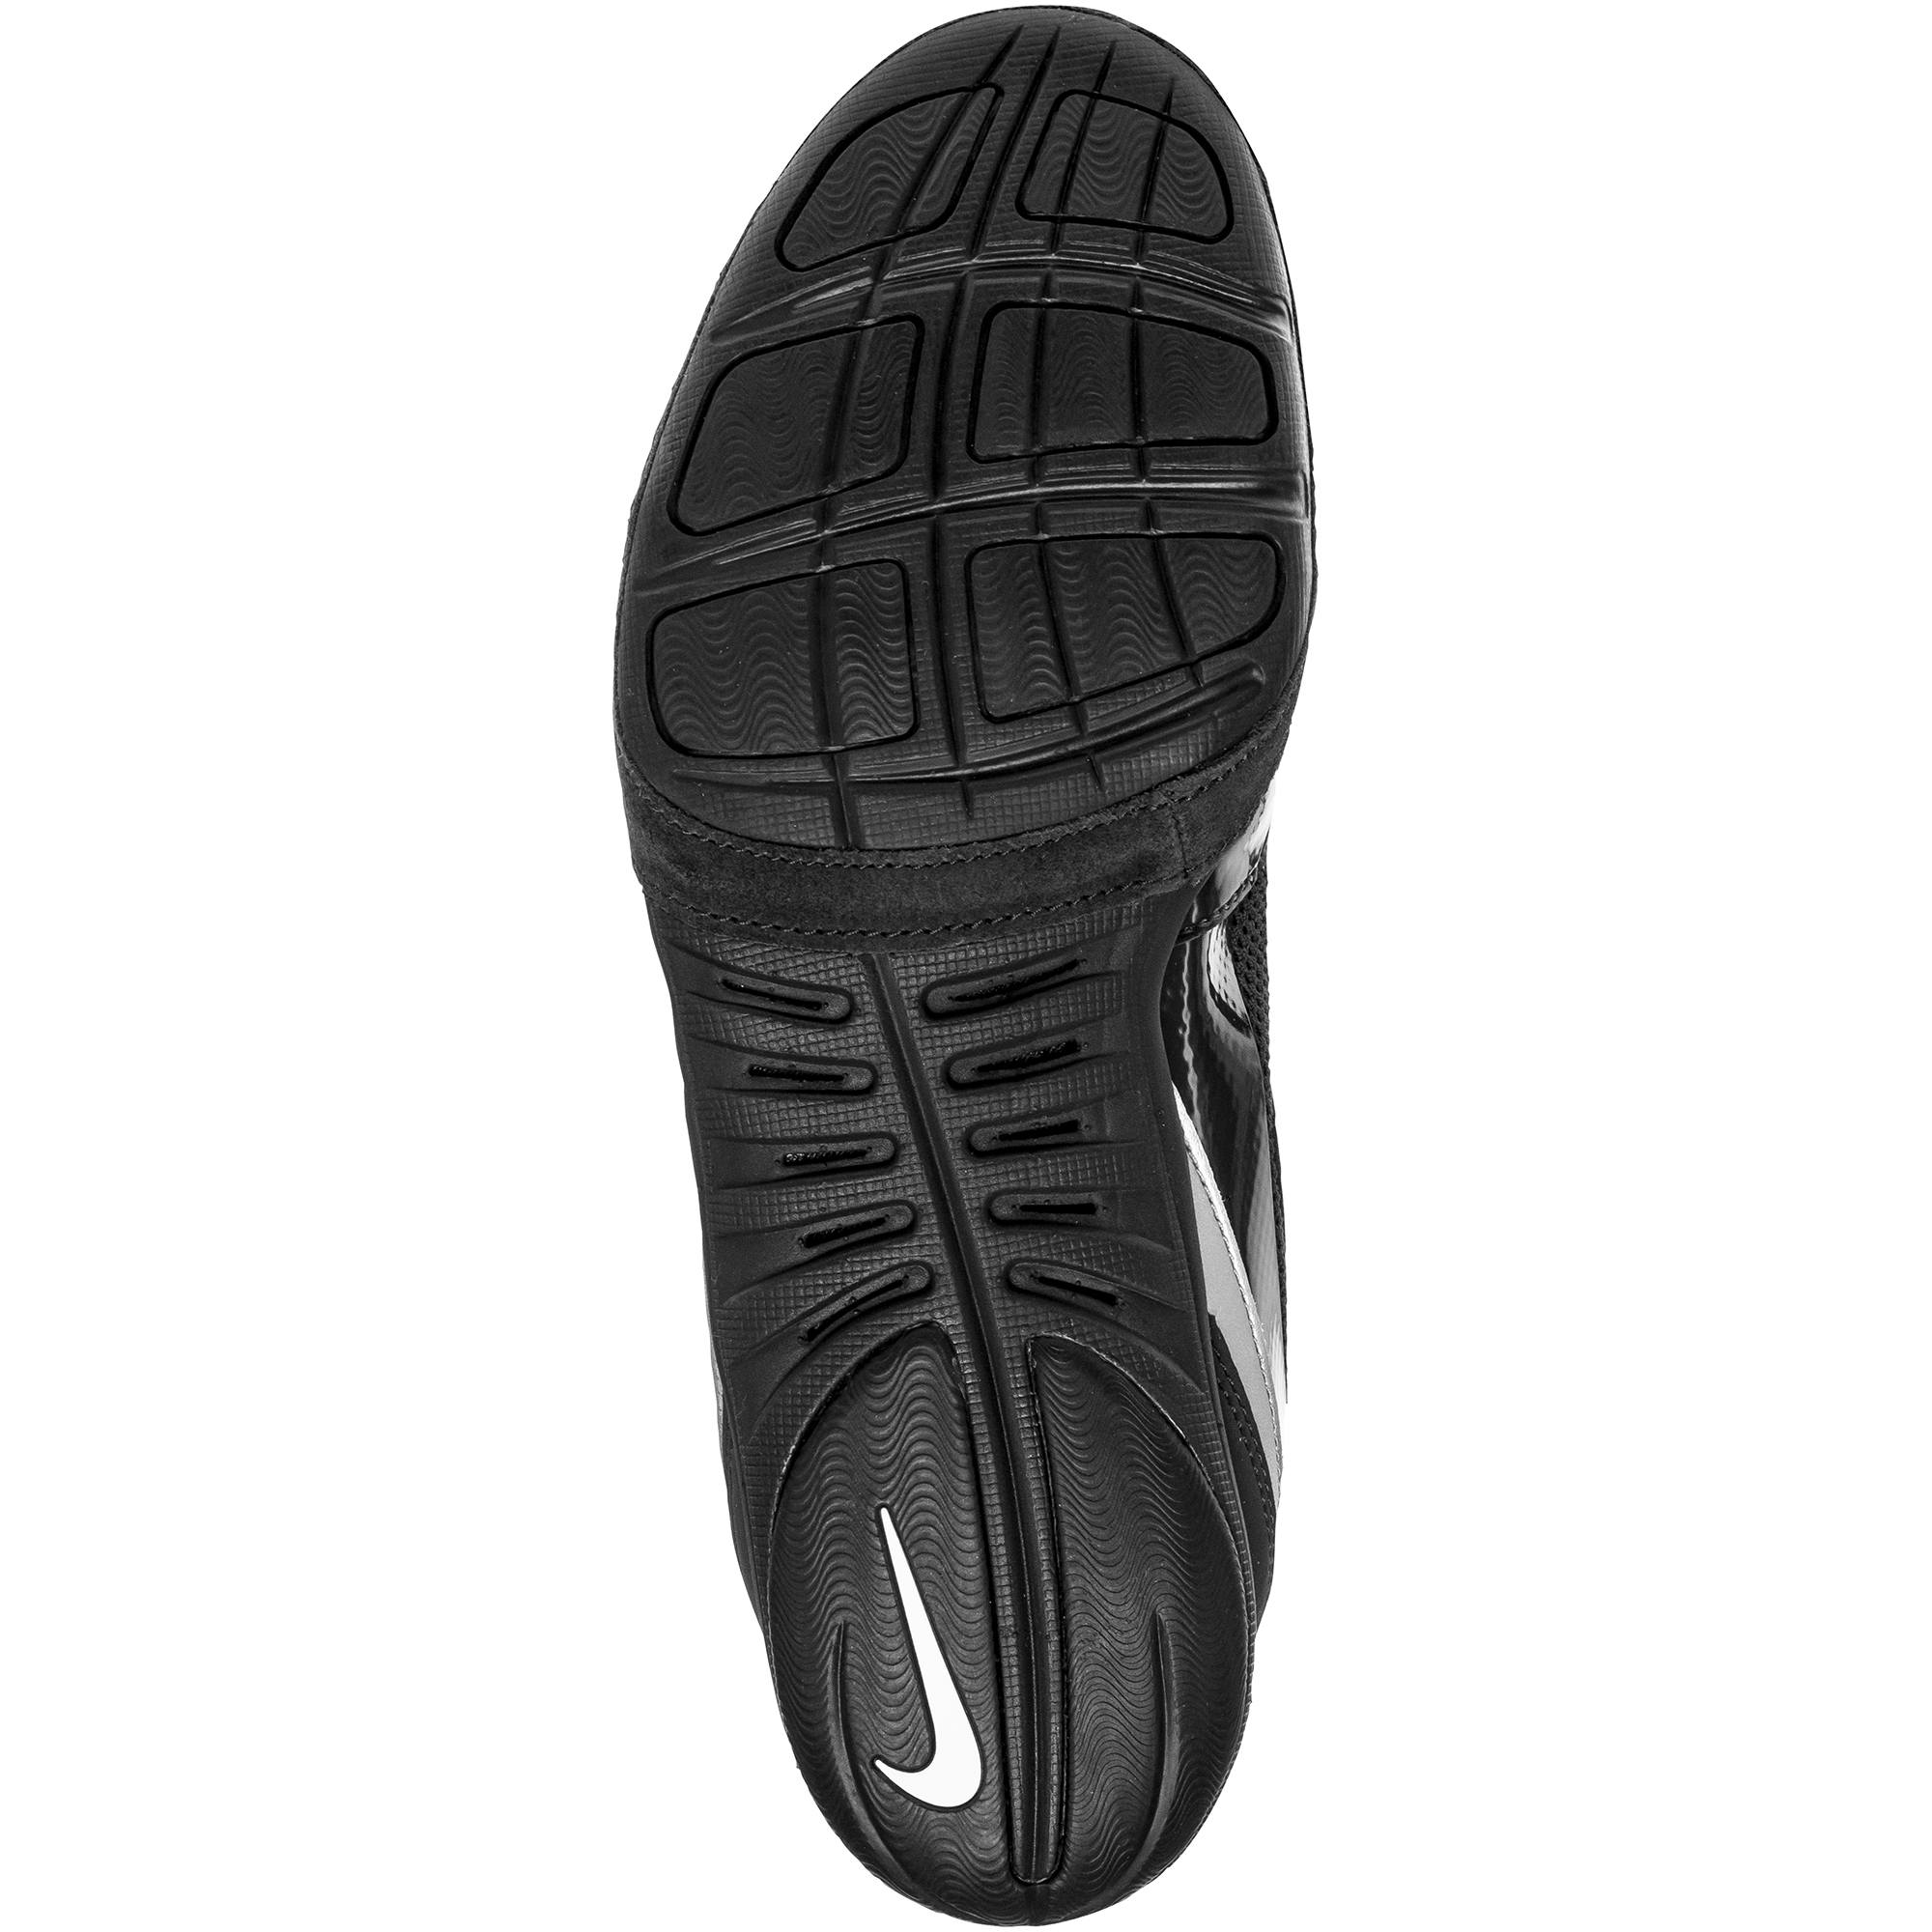 f6363efd4158 Nike Freeks Shoes